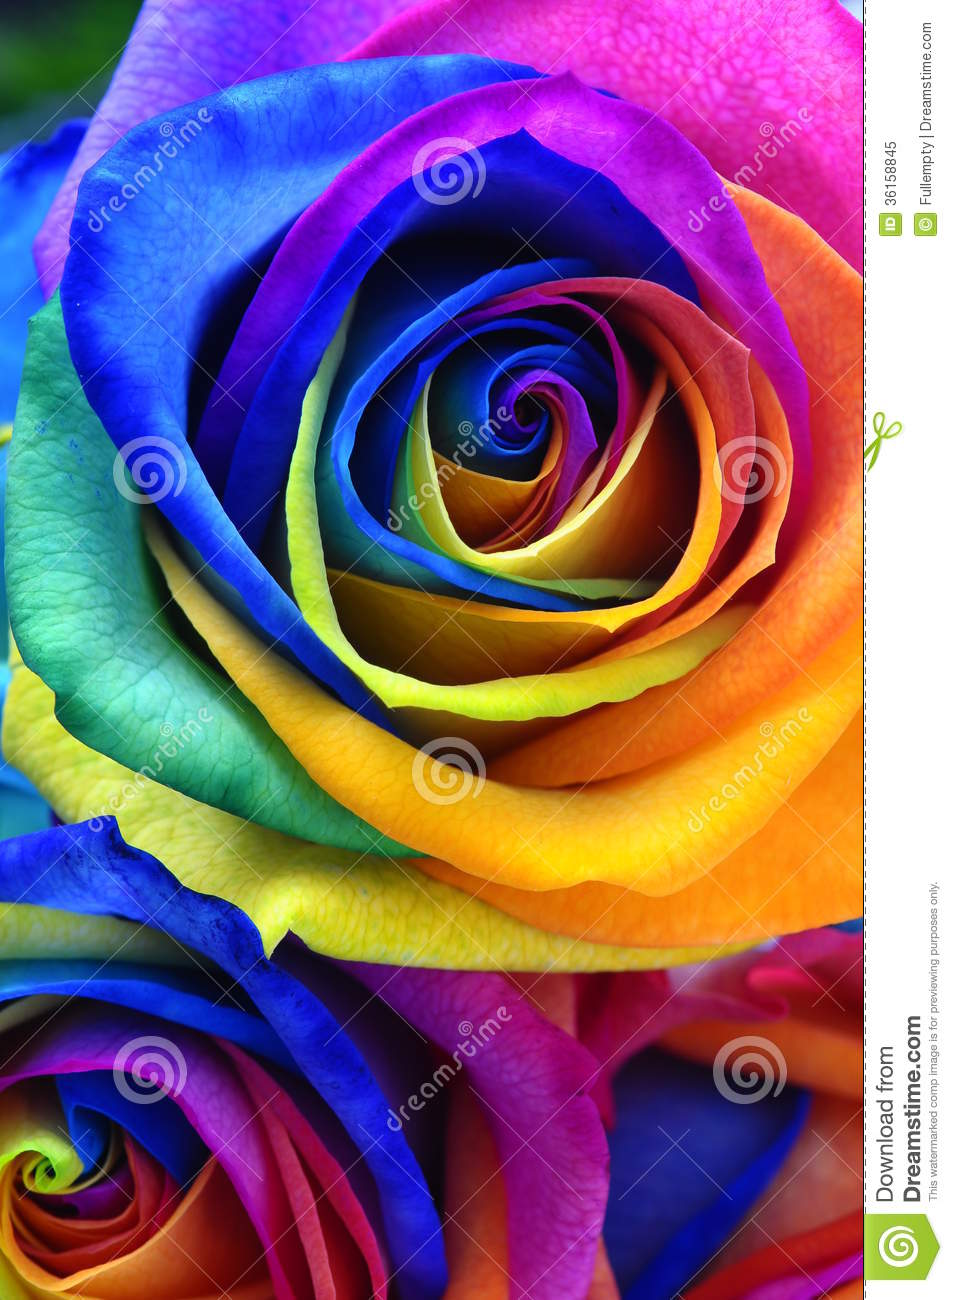 Rainbow rose or happy flower royalty free stock photo for Rainbow dyed roses